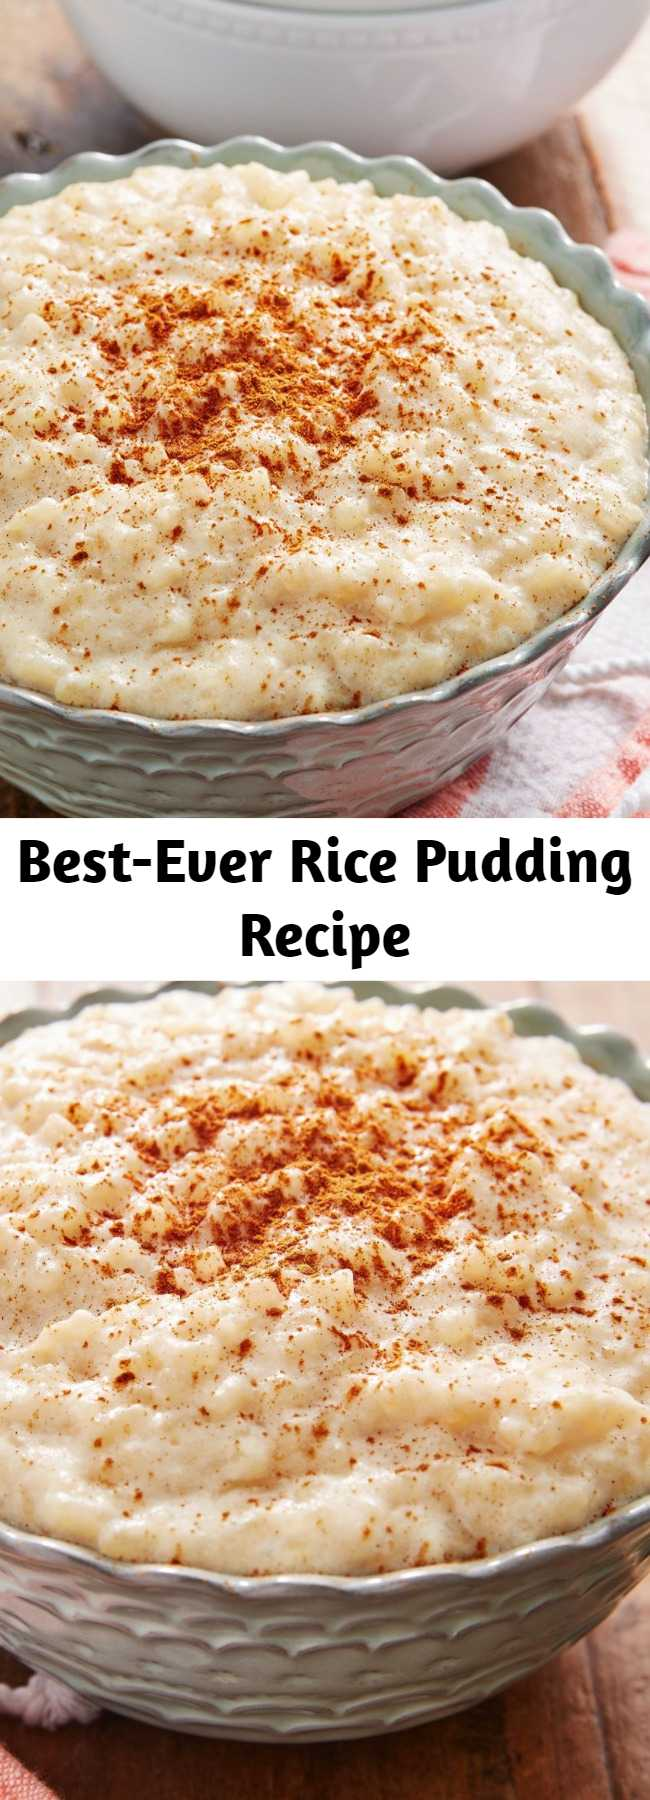 Best-Ever Rice Pudding Recipe - This cozy Rice Pudding is perfect for dessert or a sweet breakfast.